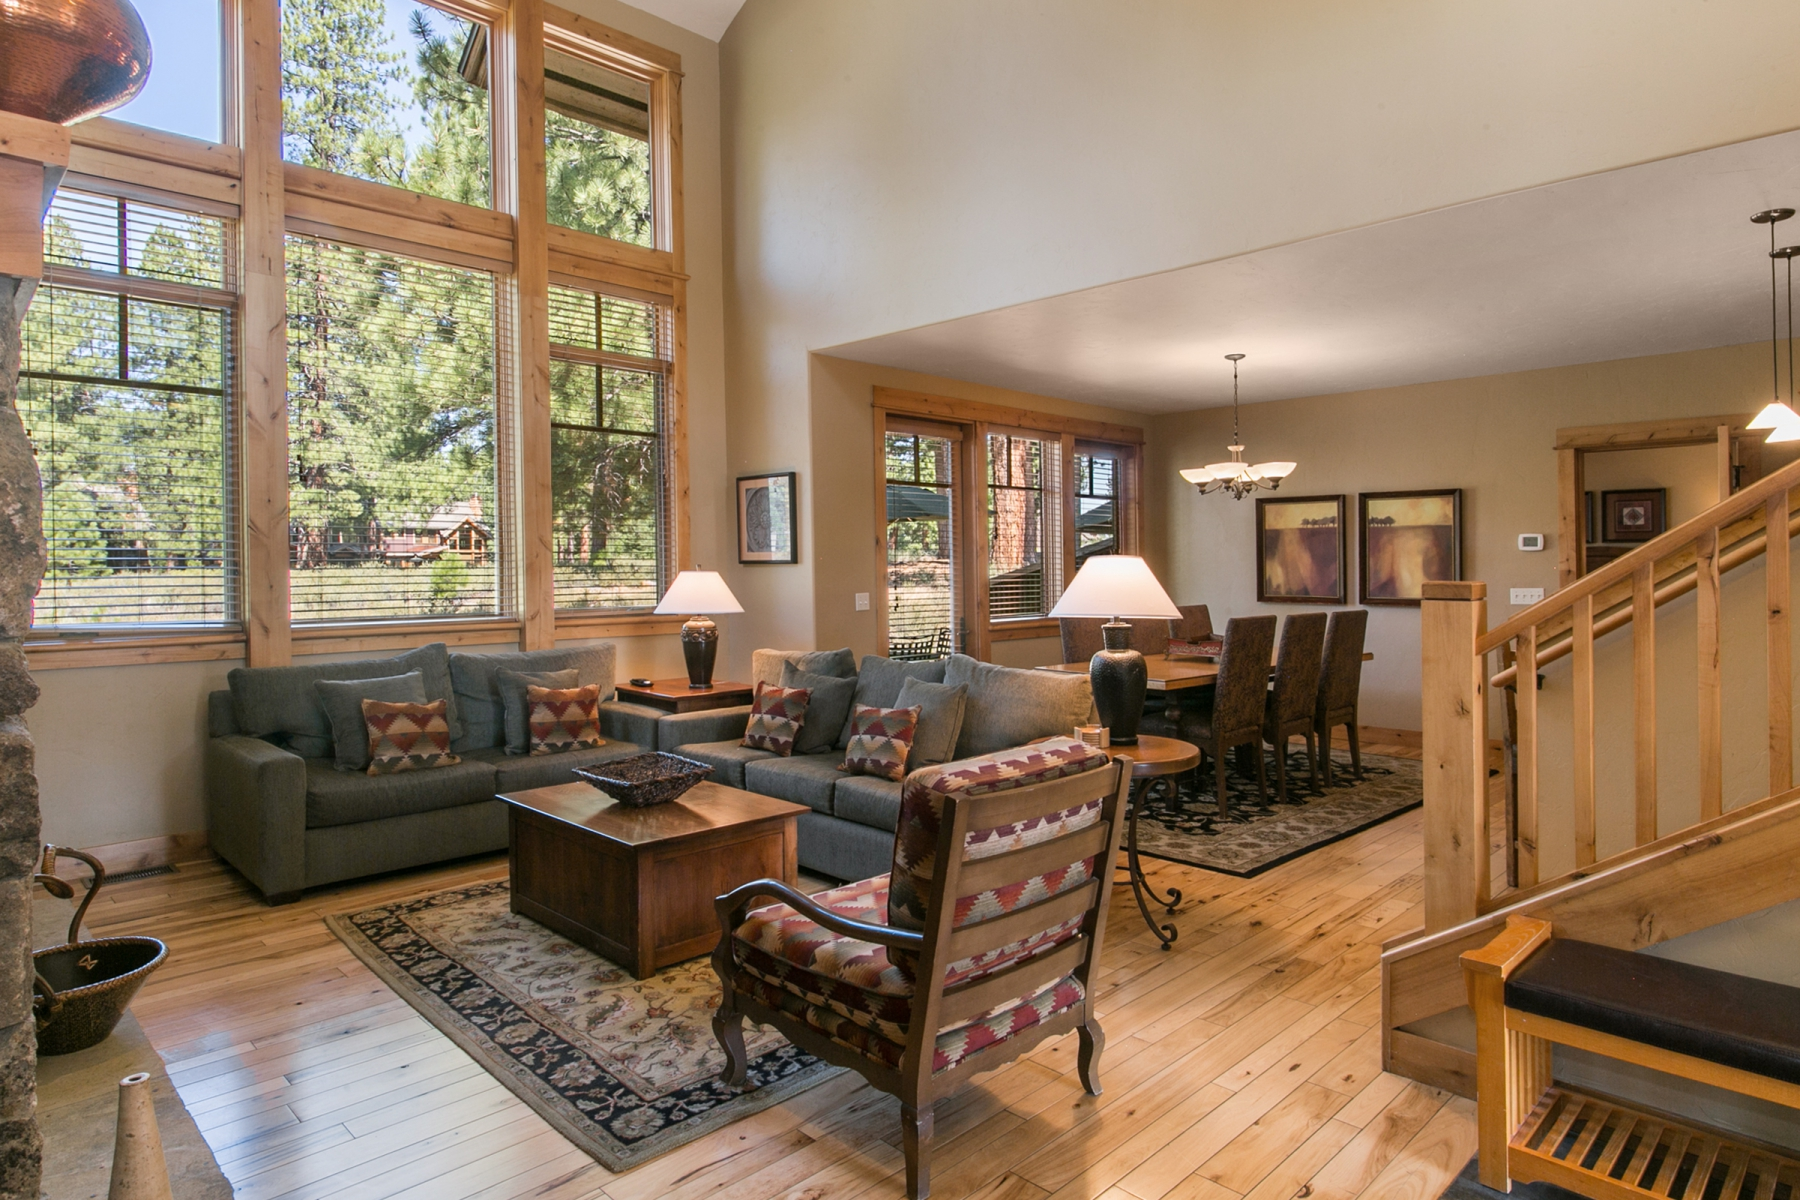 Additional photo for property listing at 12588 Legacy Court A9A-01 Truckee,California, 96161 12588 Legacy Court A9A-01 Truckee, California 96161 United States